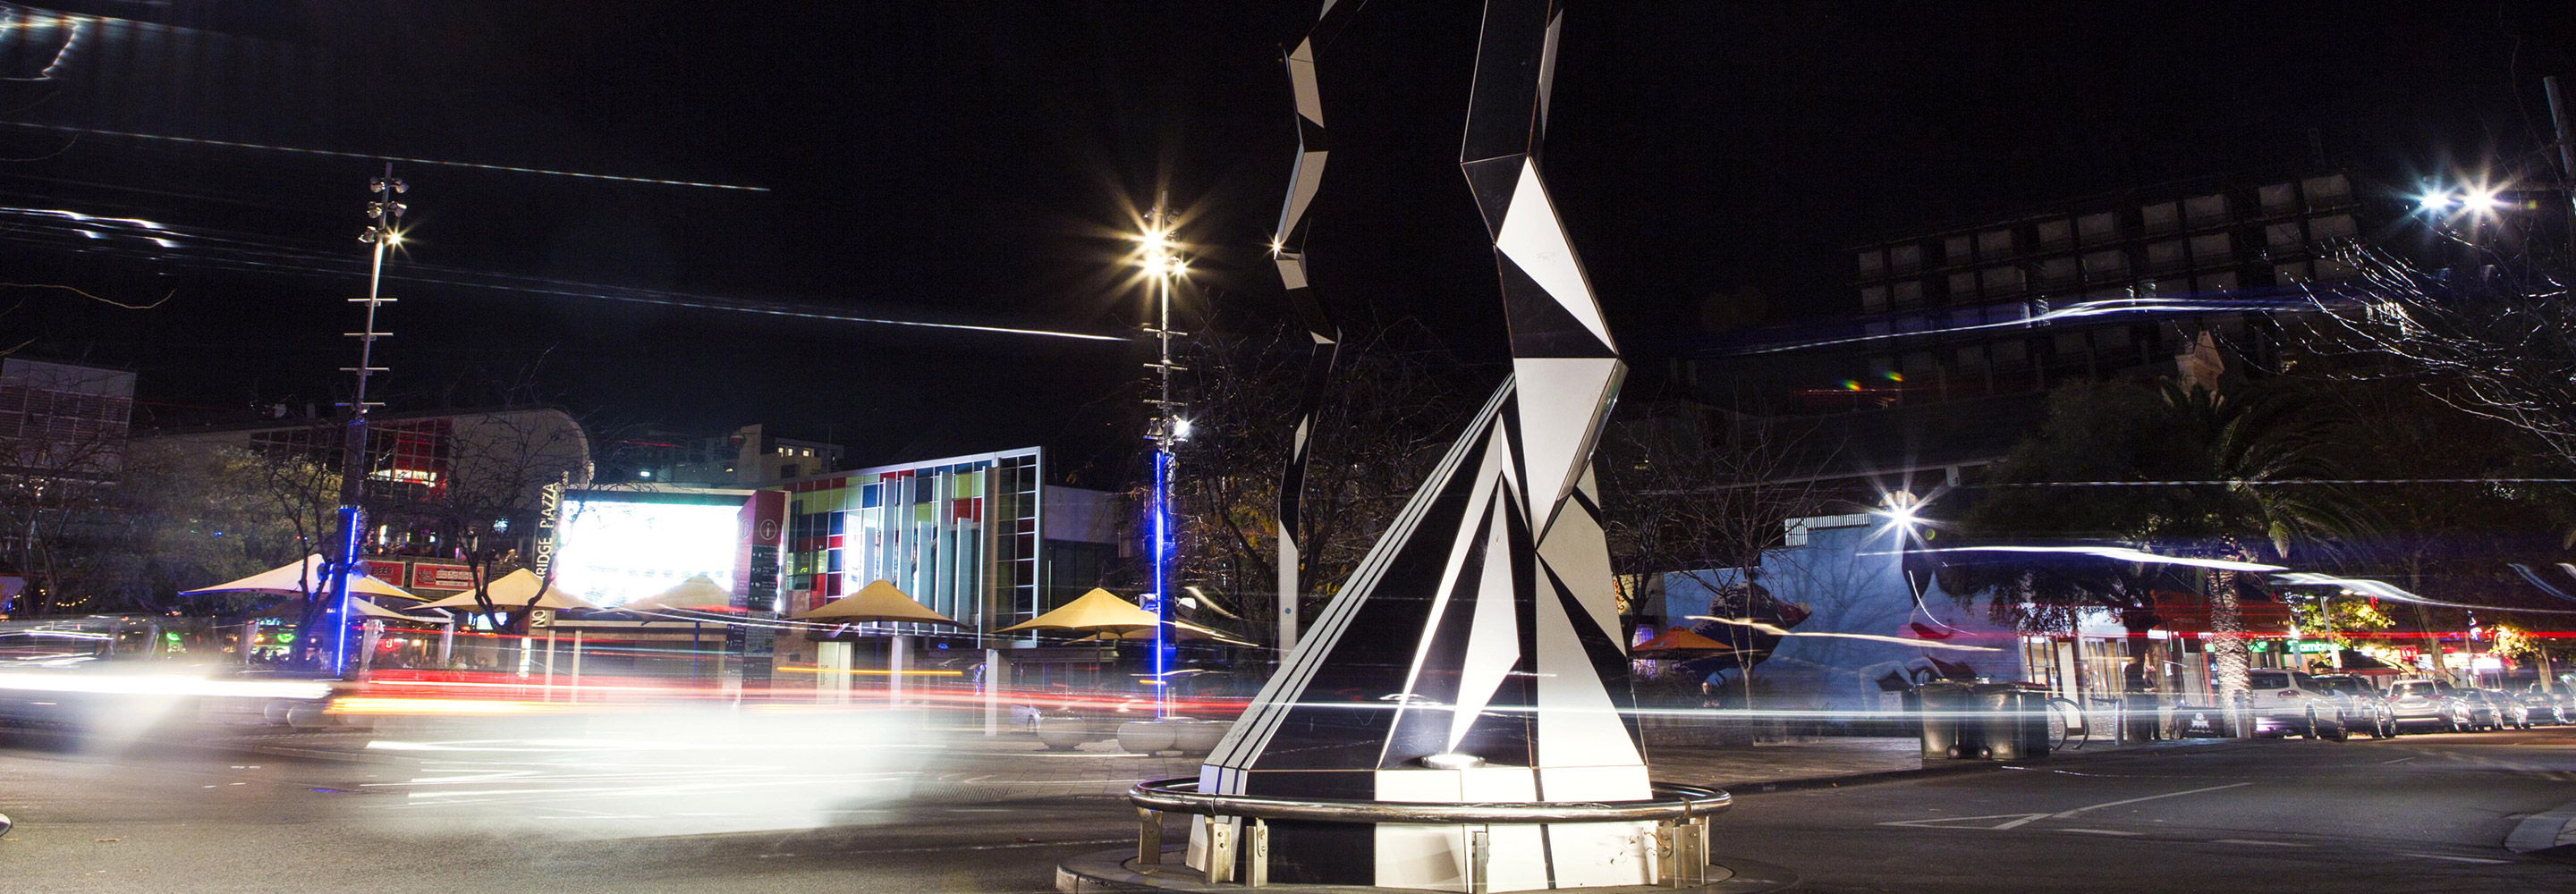 Modern sculpture in road in dark